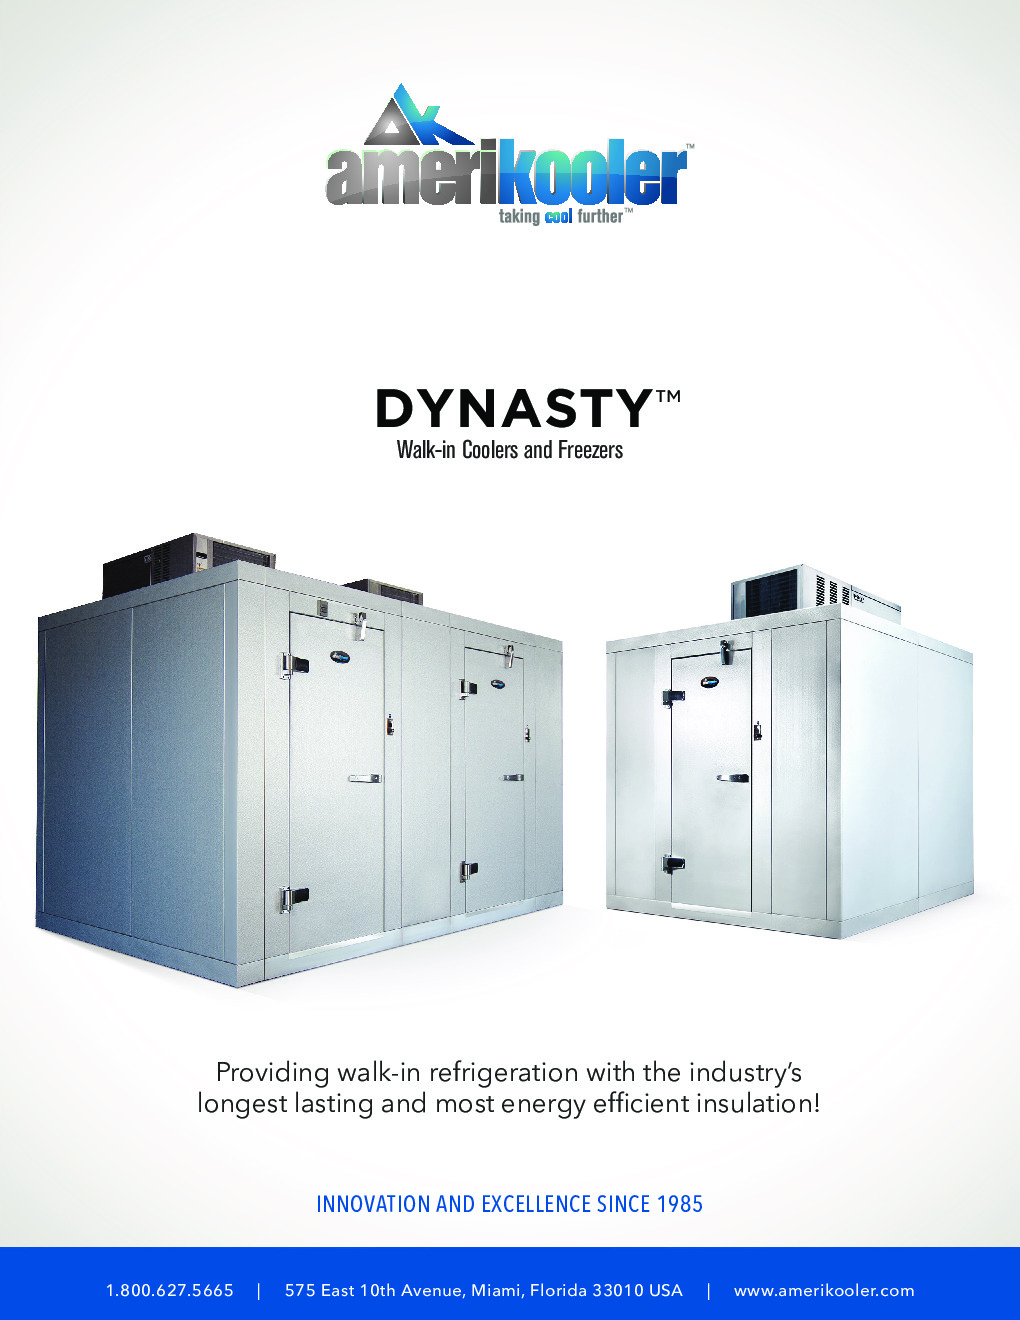 AmeriKooler DW081477F-6/8-SC 8' X 14' Walk-In Cooler, 8' L Cooler with Floor and 6' L Freezer, Self Contained